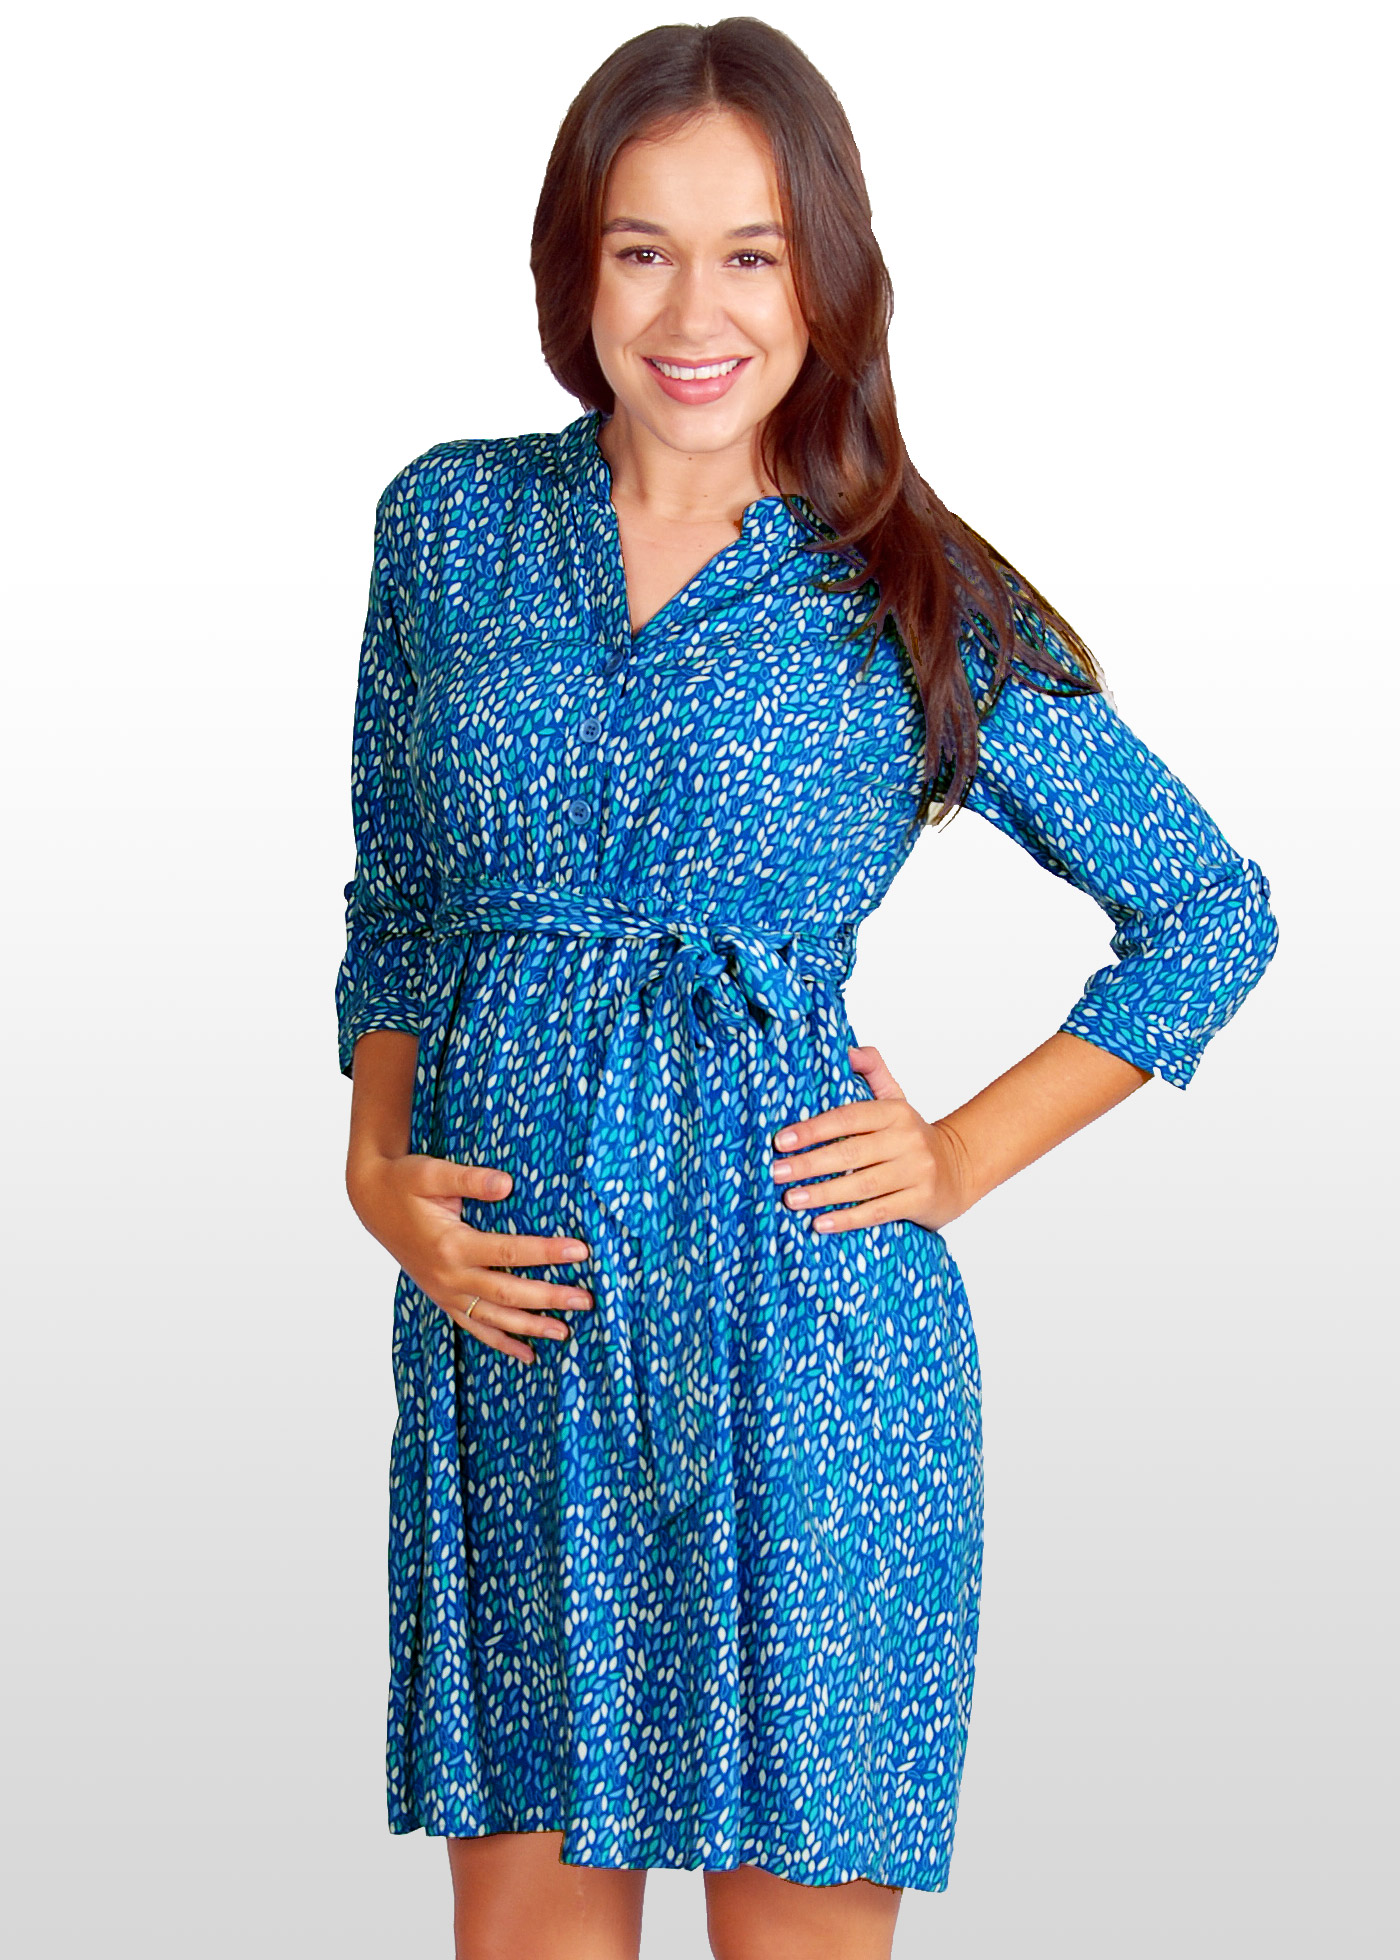 Maternity Clothes Online International Shipping